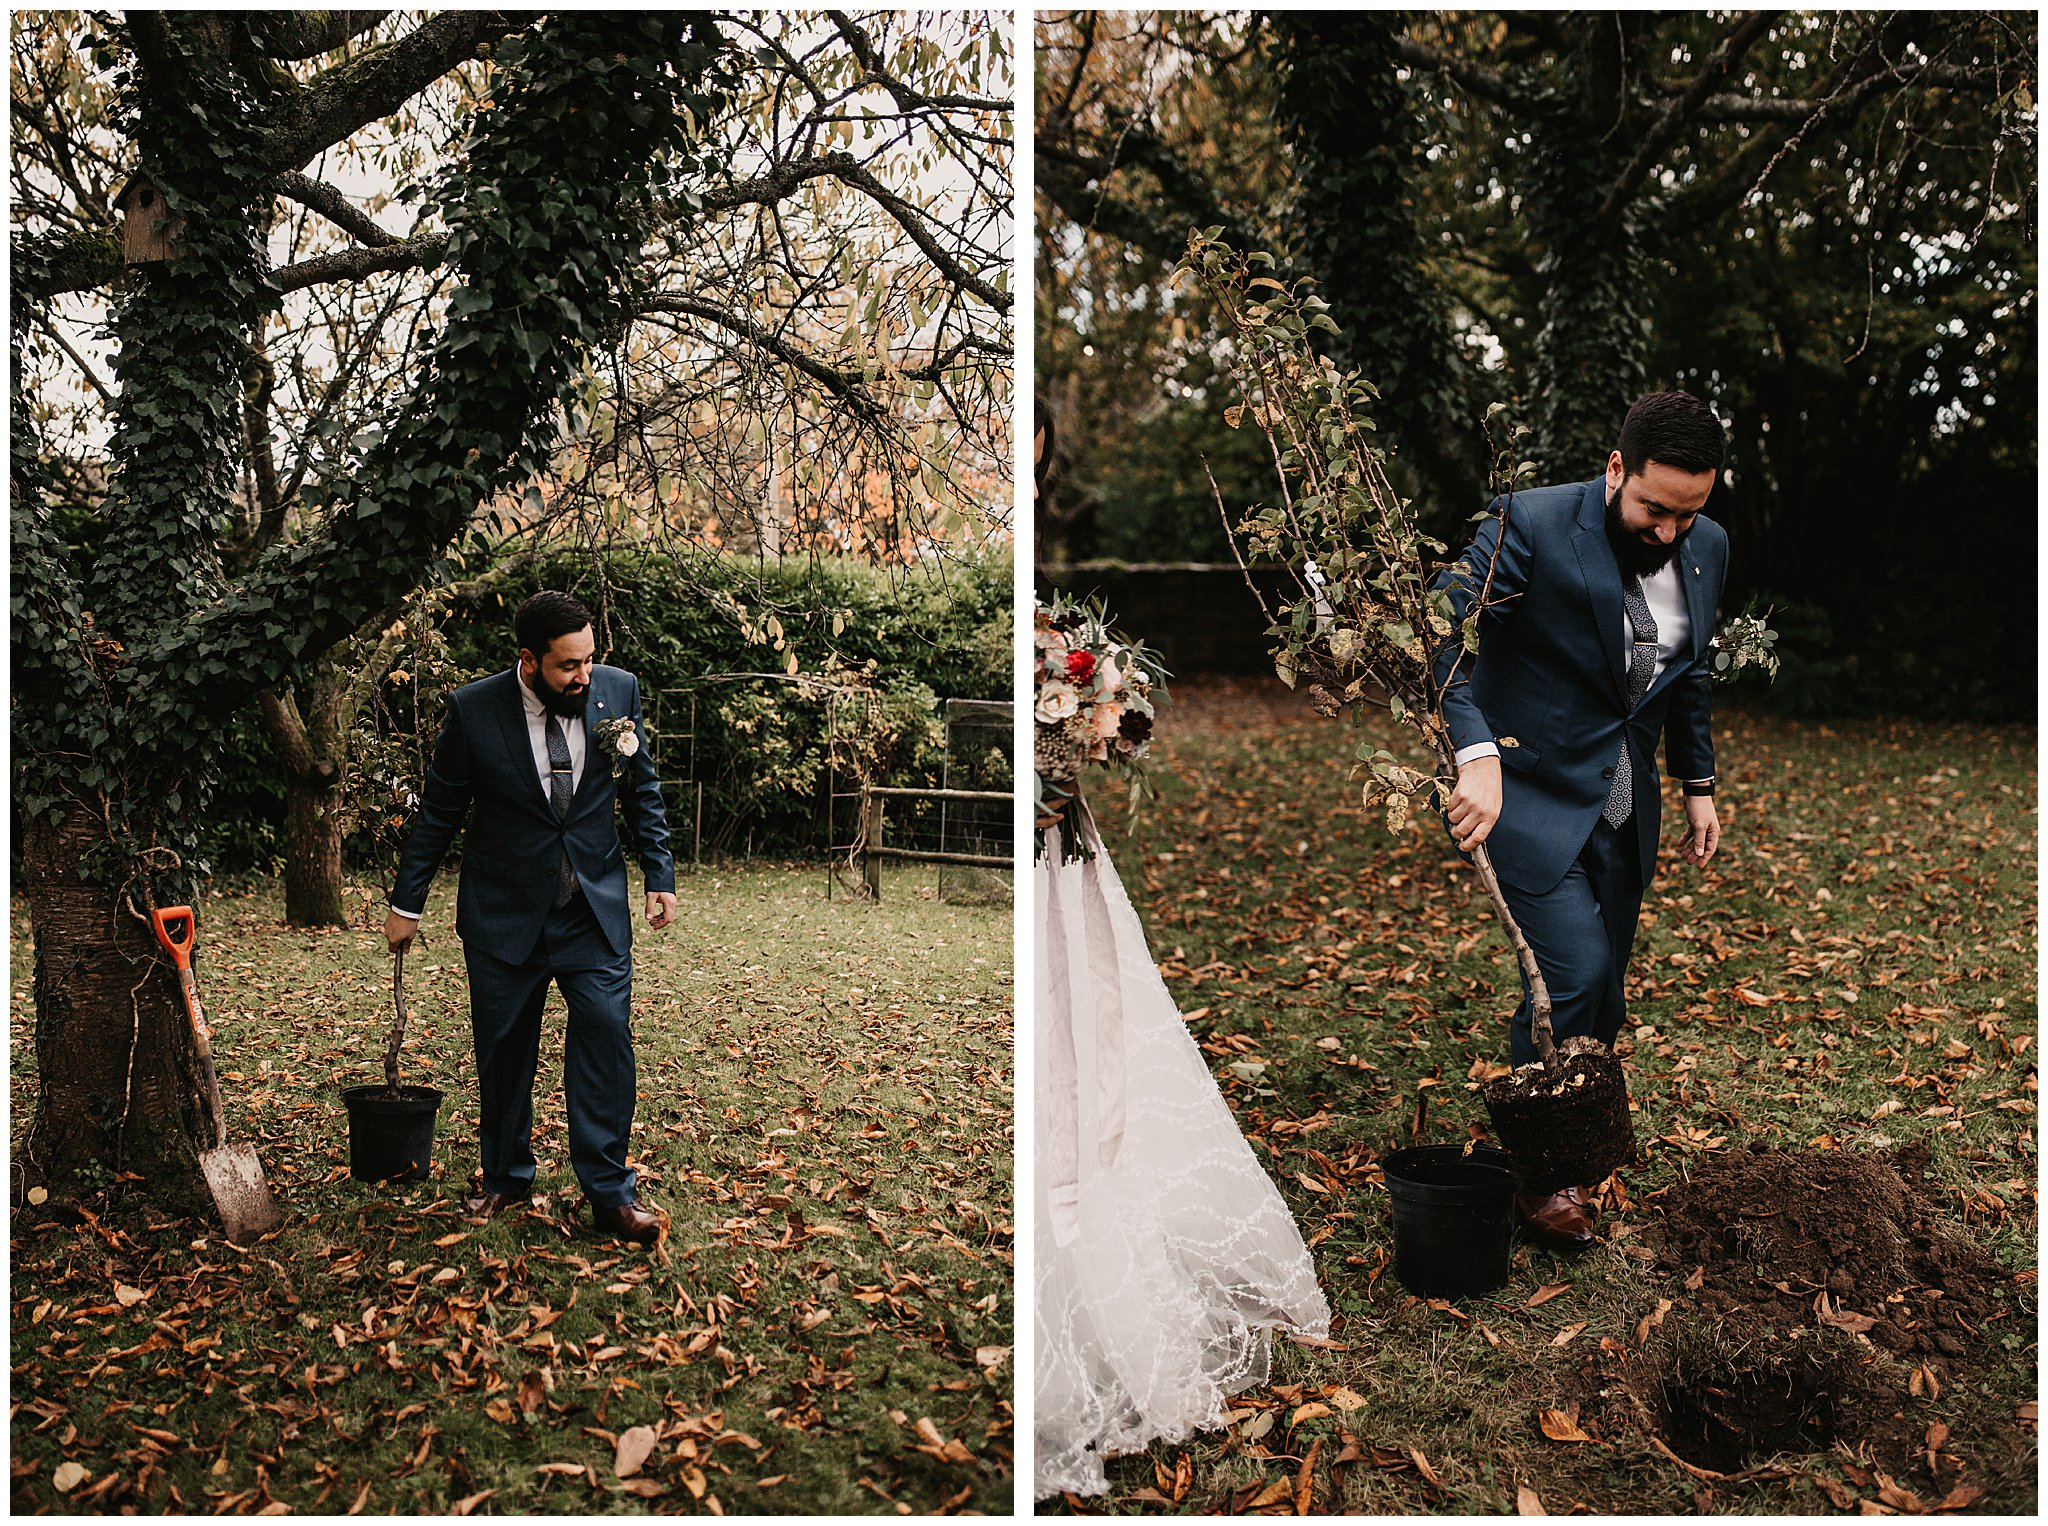 Max & Ksenia Autumnal Wiltshire Wedding-286.jpg